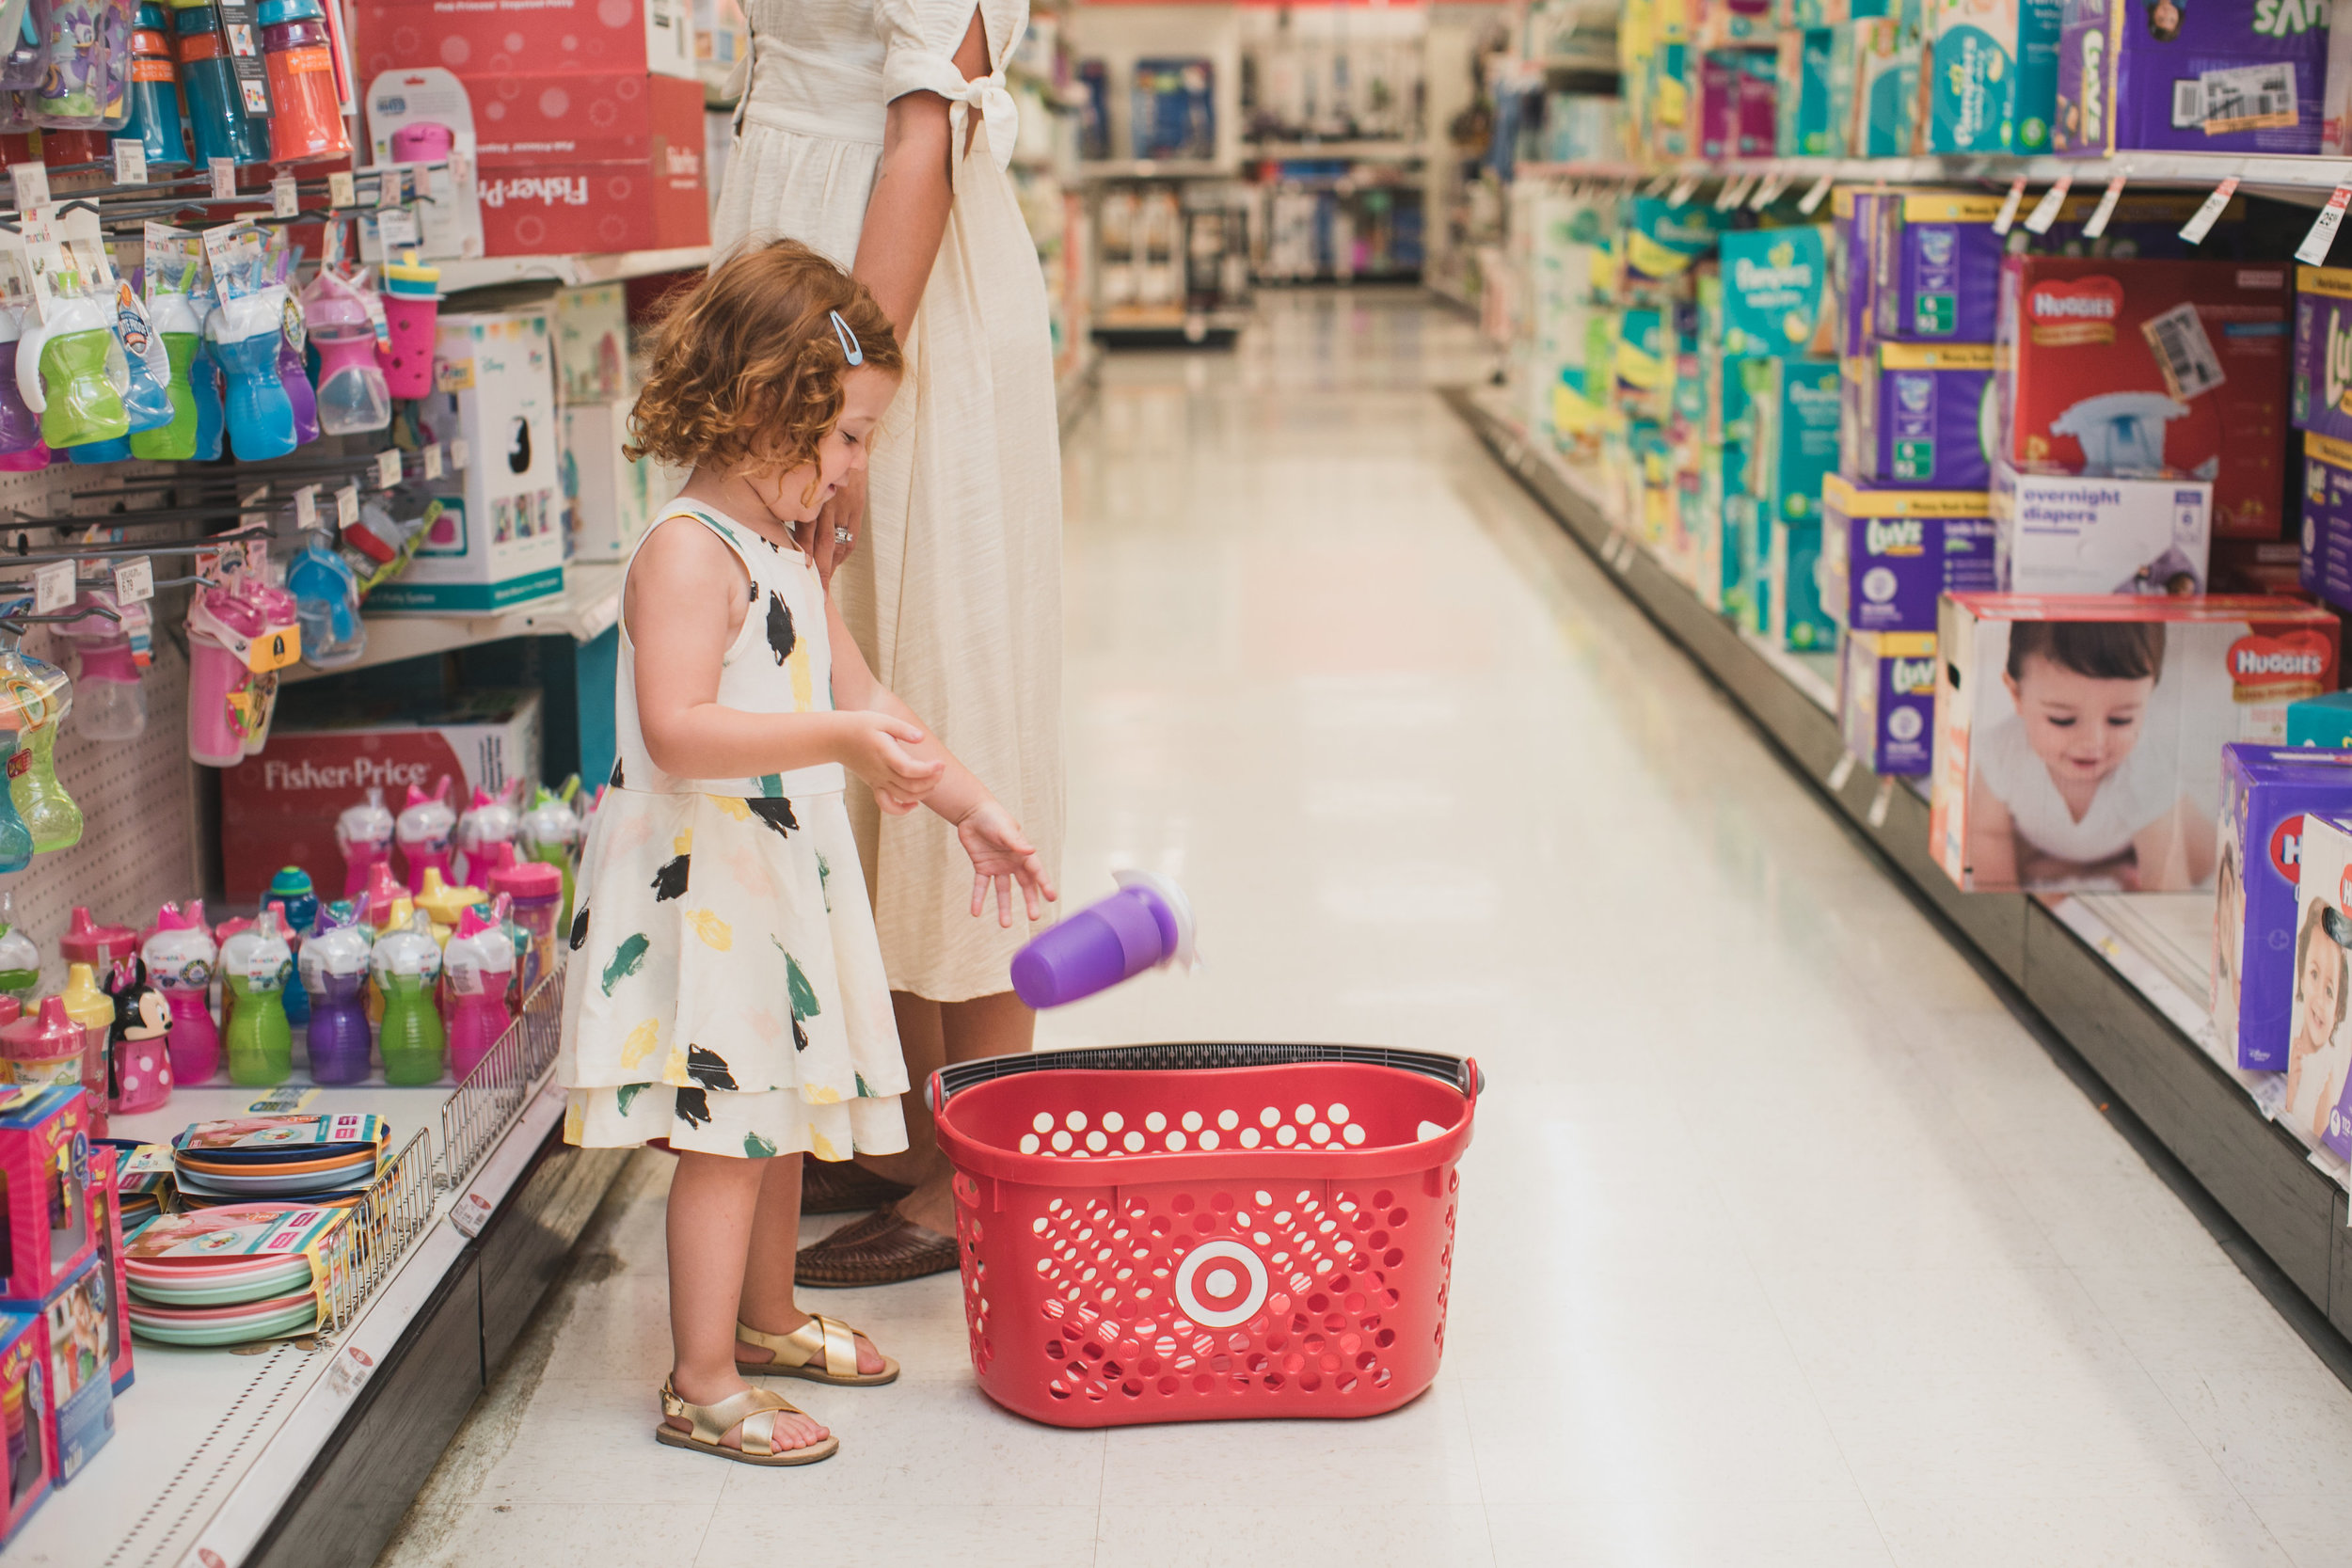 Baby_Boy_Bakery_Target_Lily_Ro_Photography-2371.jpg